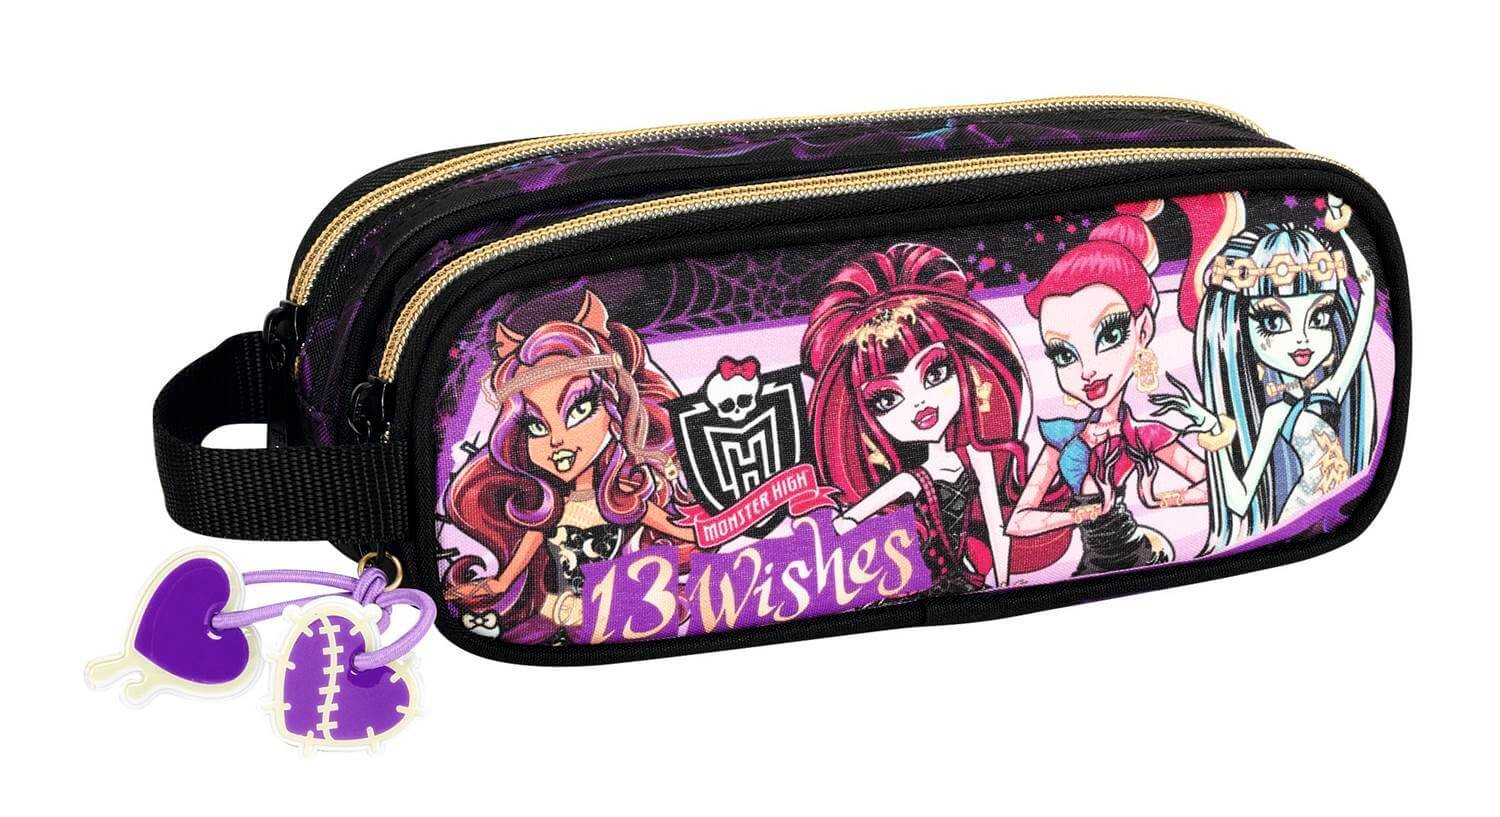 Monster High XL Bolso de Hombro y Caja de Lápices, Negro